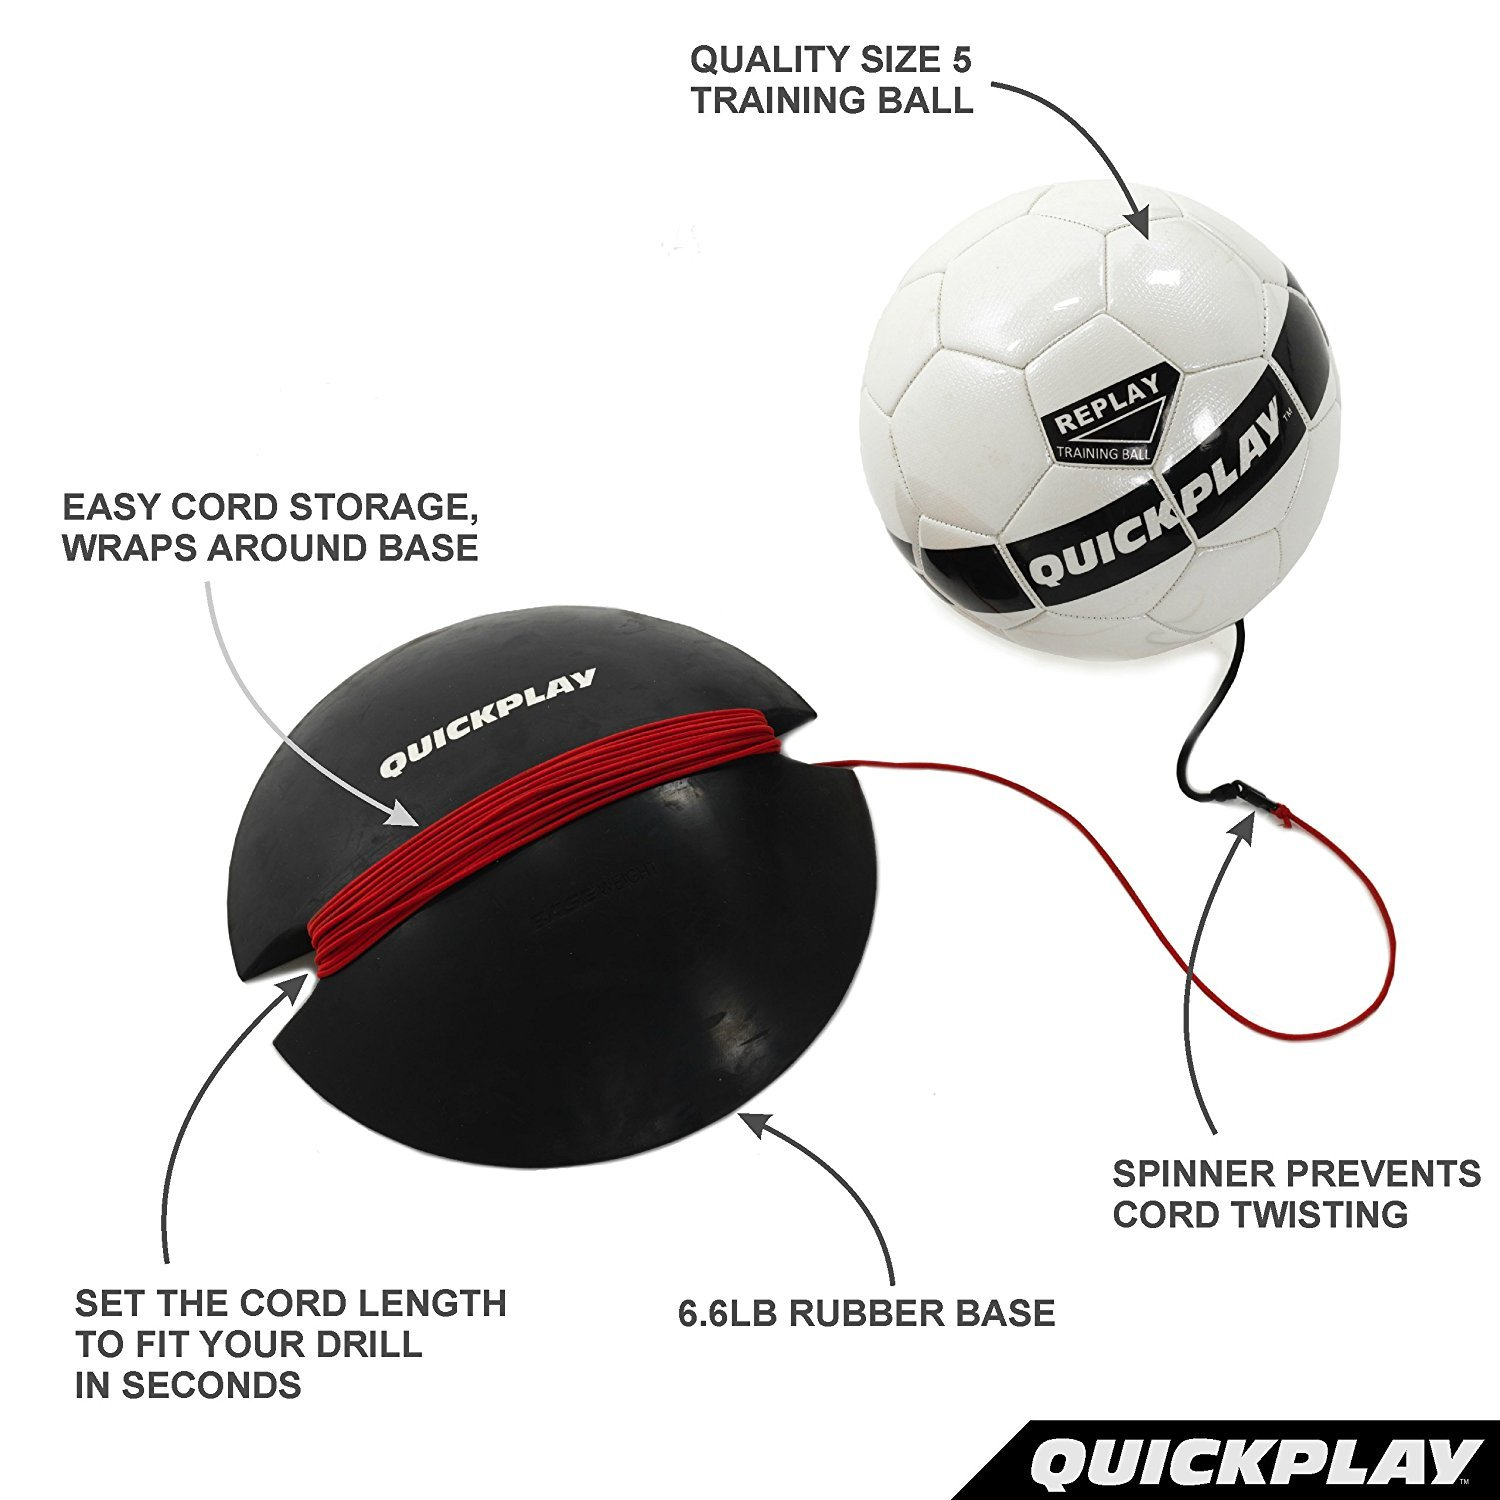 The Ultimate Hands Free Soccer Trainer QuickPlay Replay Soccer Training Ball Adjustable Bungee Elastic Training Ball with Base Weight